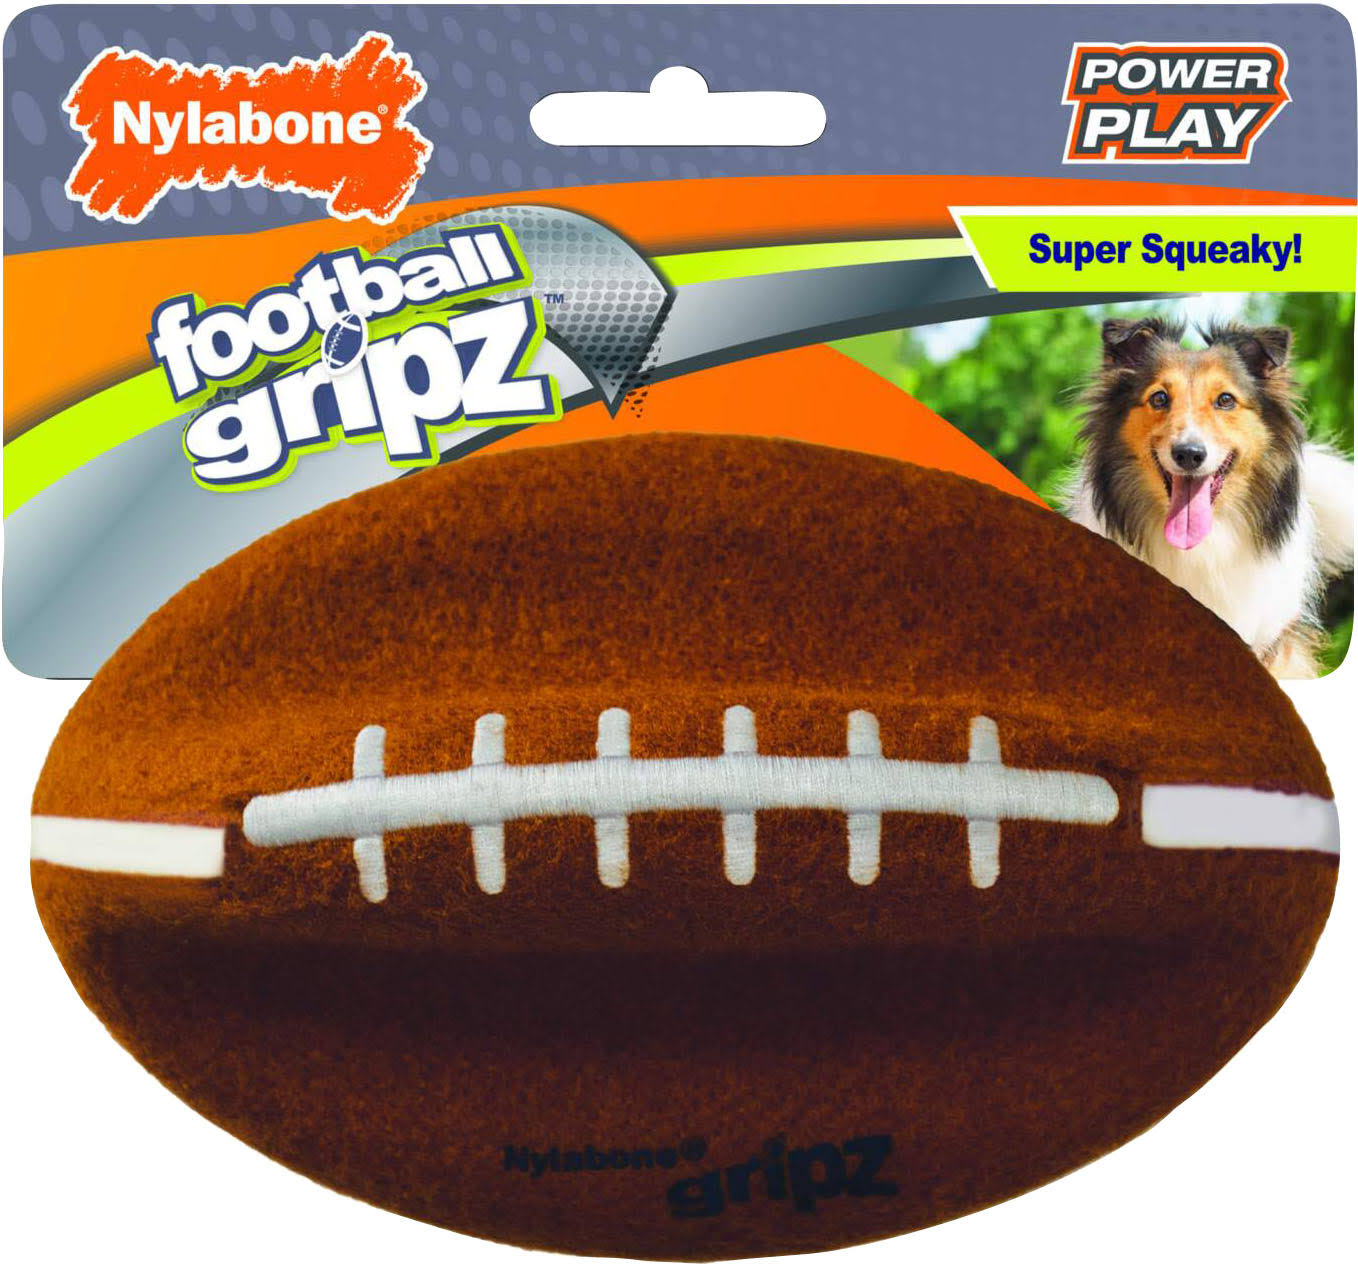 Nylabone NPLY006P Power Play Football Gripz, Brown/White, Medium